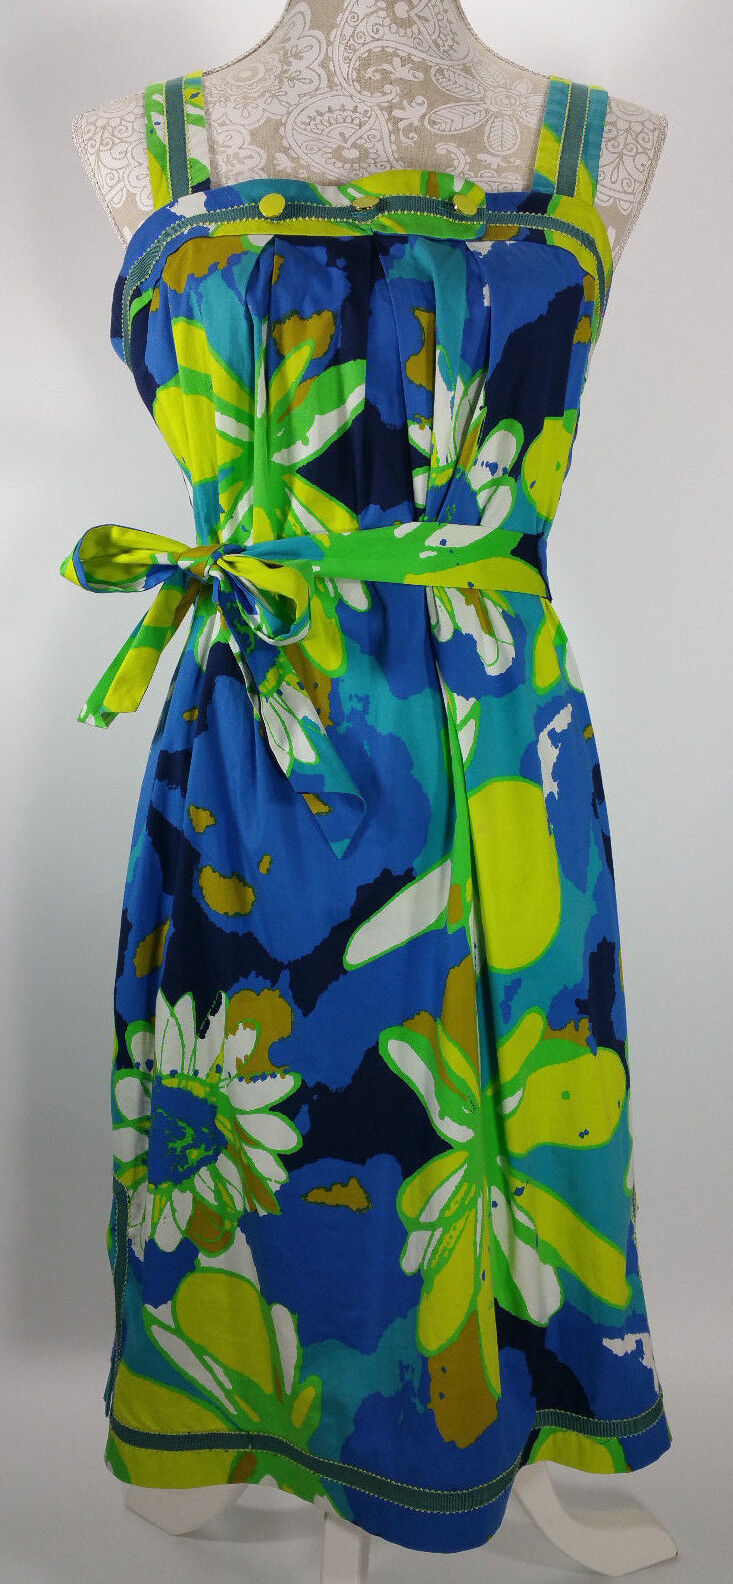 TRINA TURK LOS ANGELES BREEN ART DRESS Größe 8 FLORAL HAWAIIAN BEACH SUMMER CUTE